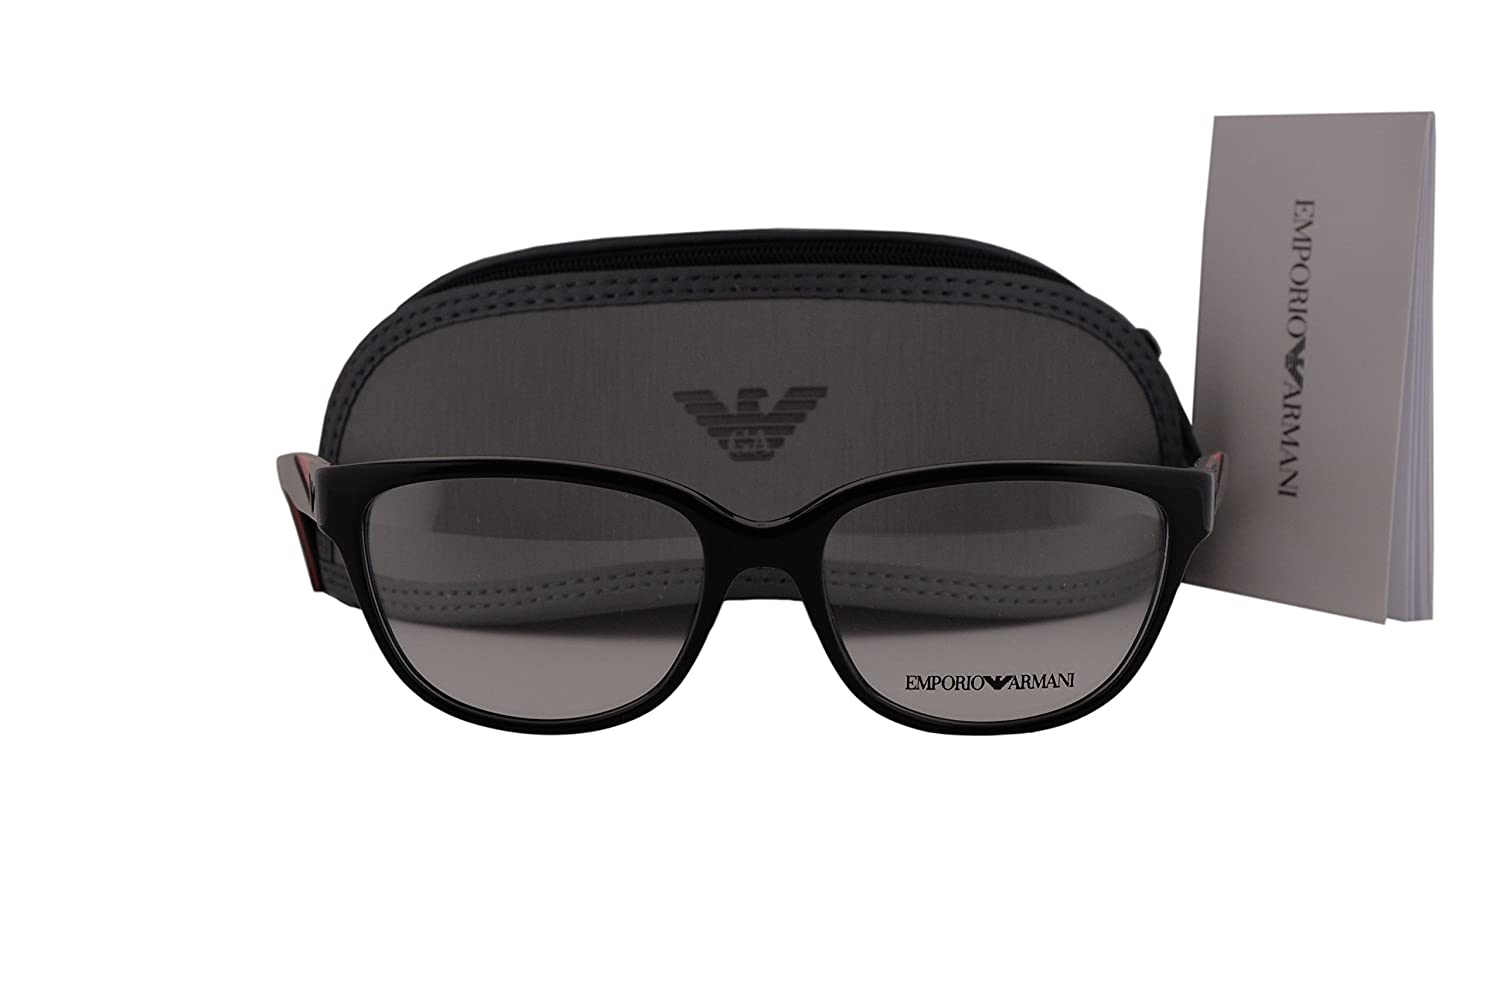 8dc4ca71920 Amazon.com  Emporio Armani EA3081 Eyeglasses 52-16-140 Shiny Black 5017 EA  3081  Clothing